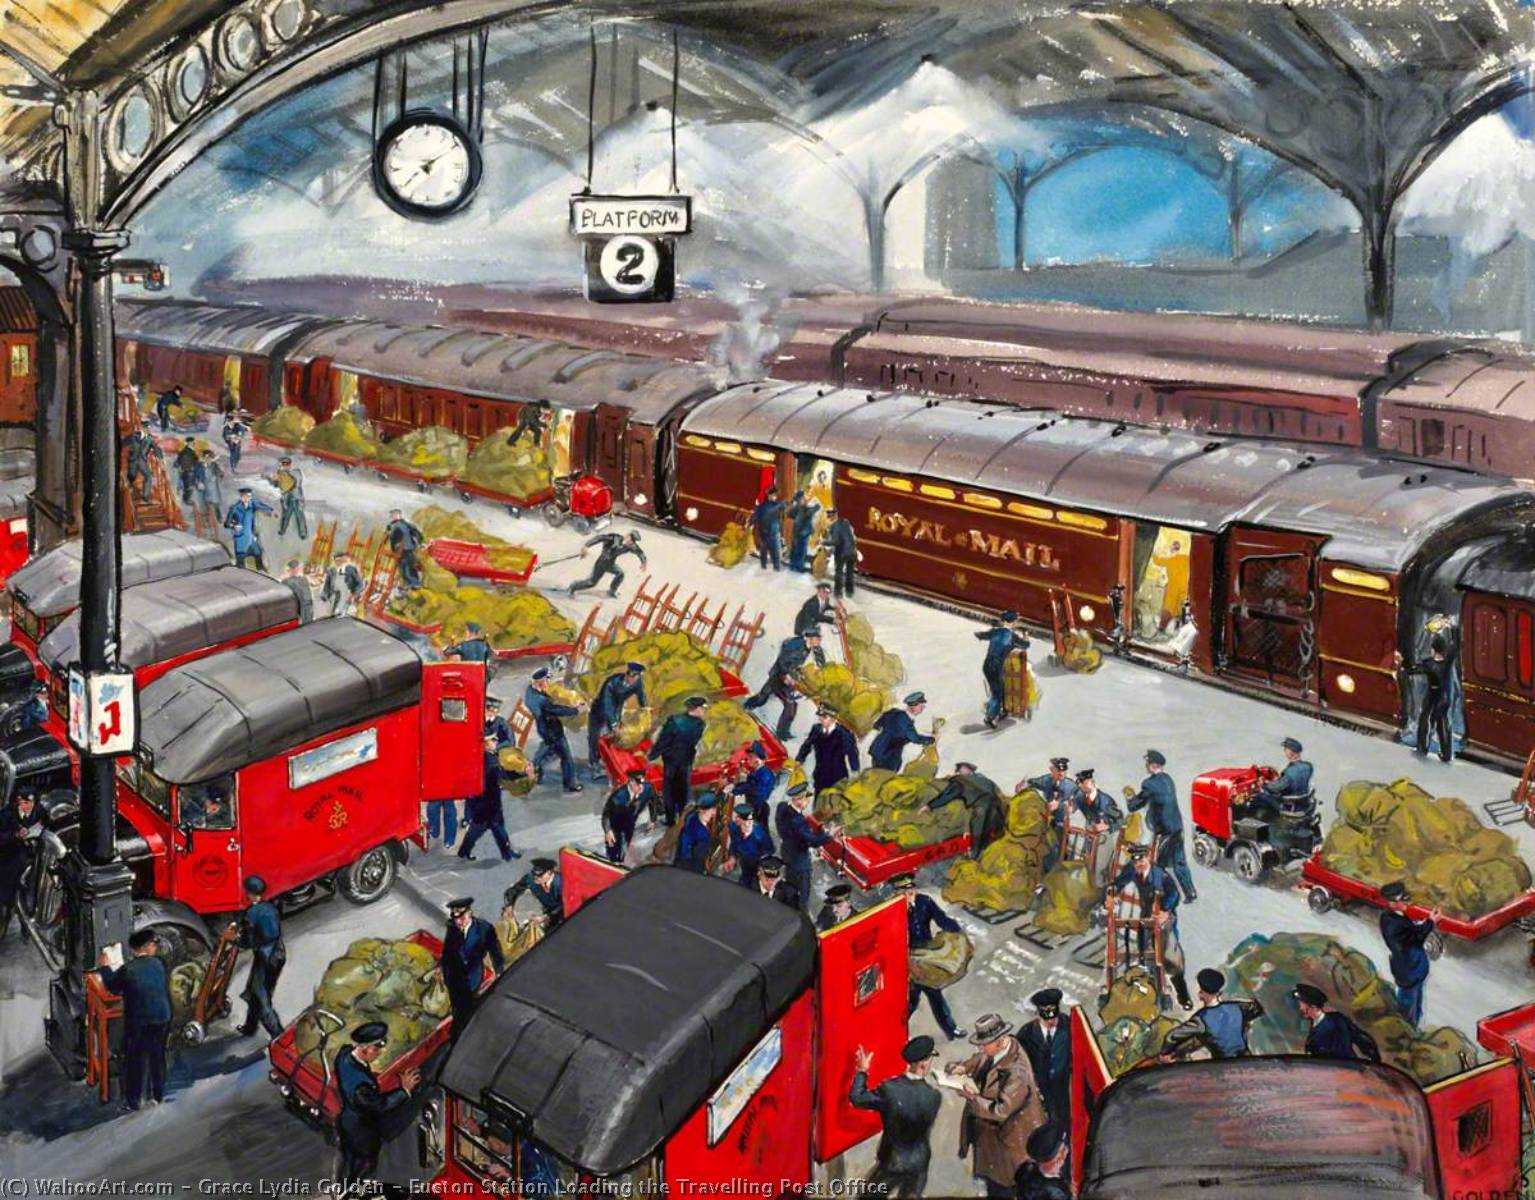 Euston Station Loading the Travelling Post Office, 1948 by Grace Lydia Golden | Reproductions Grace Lydia Golden | WahooArt.com